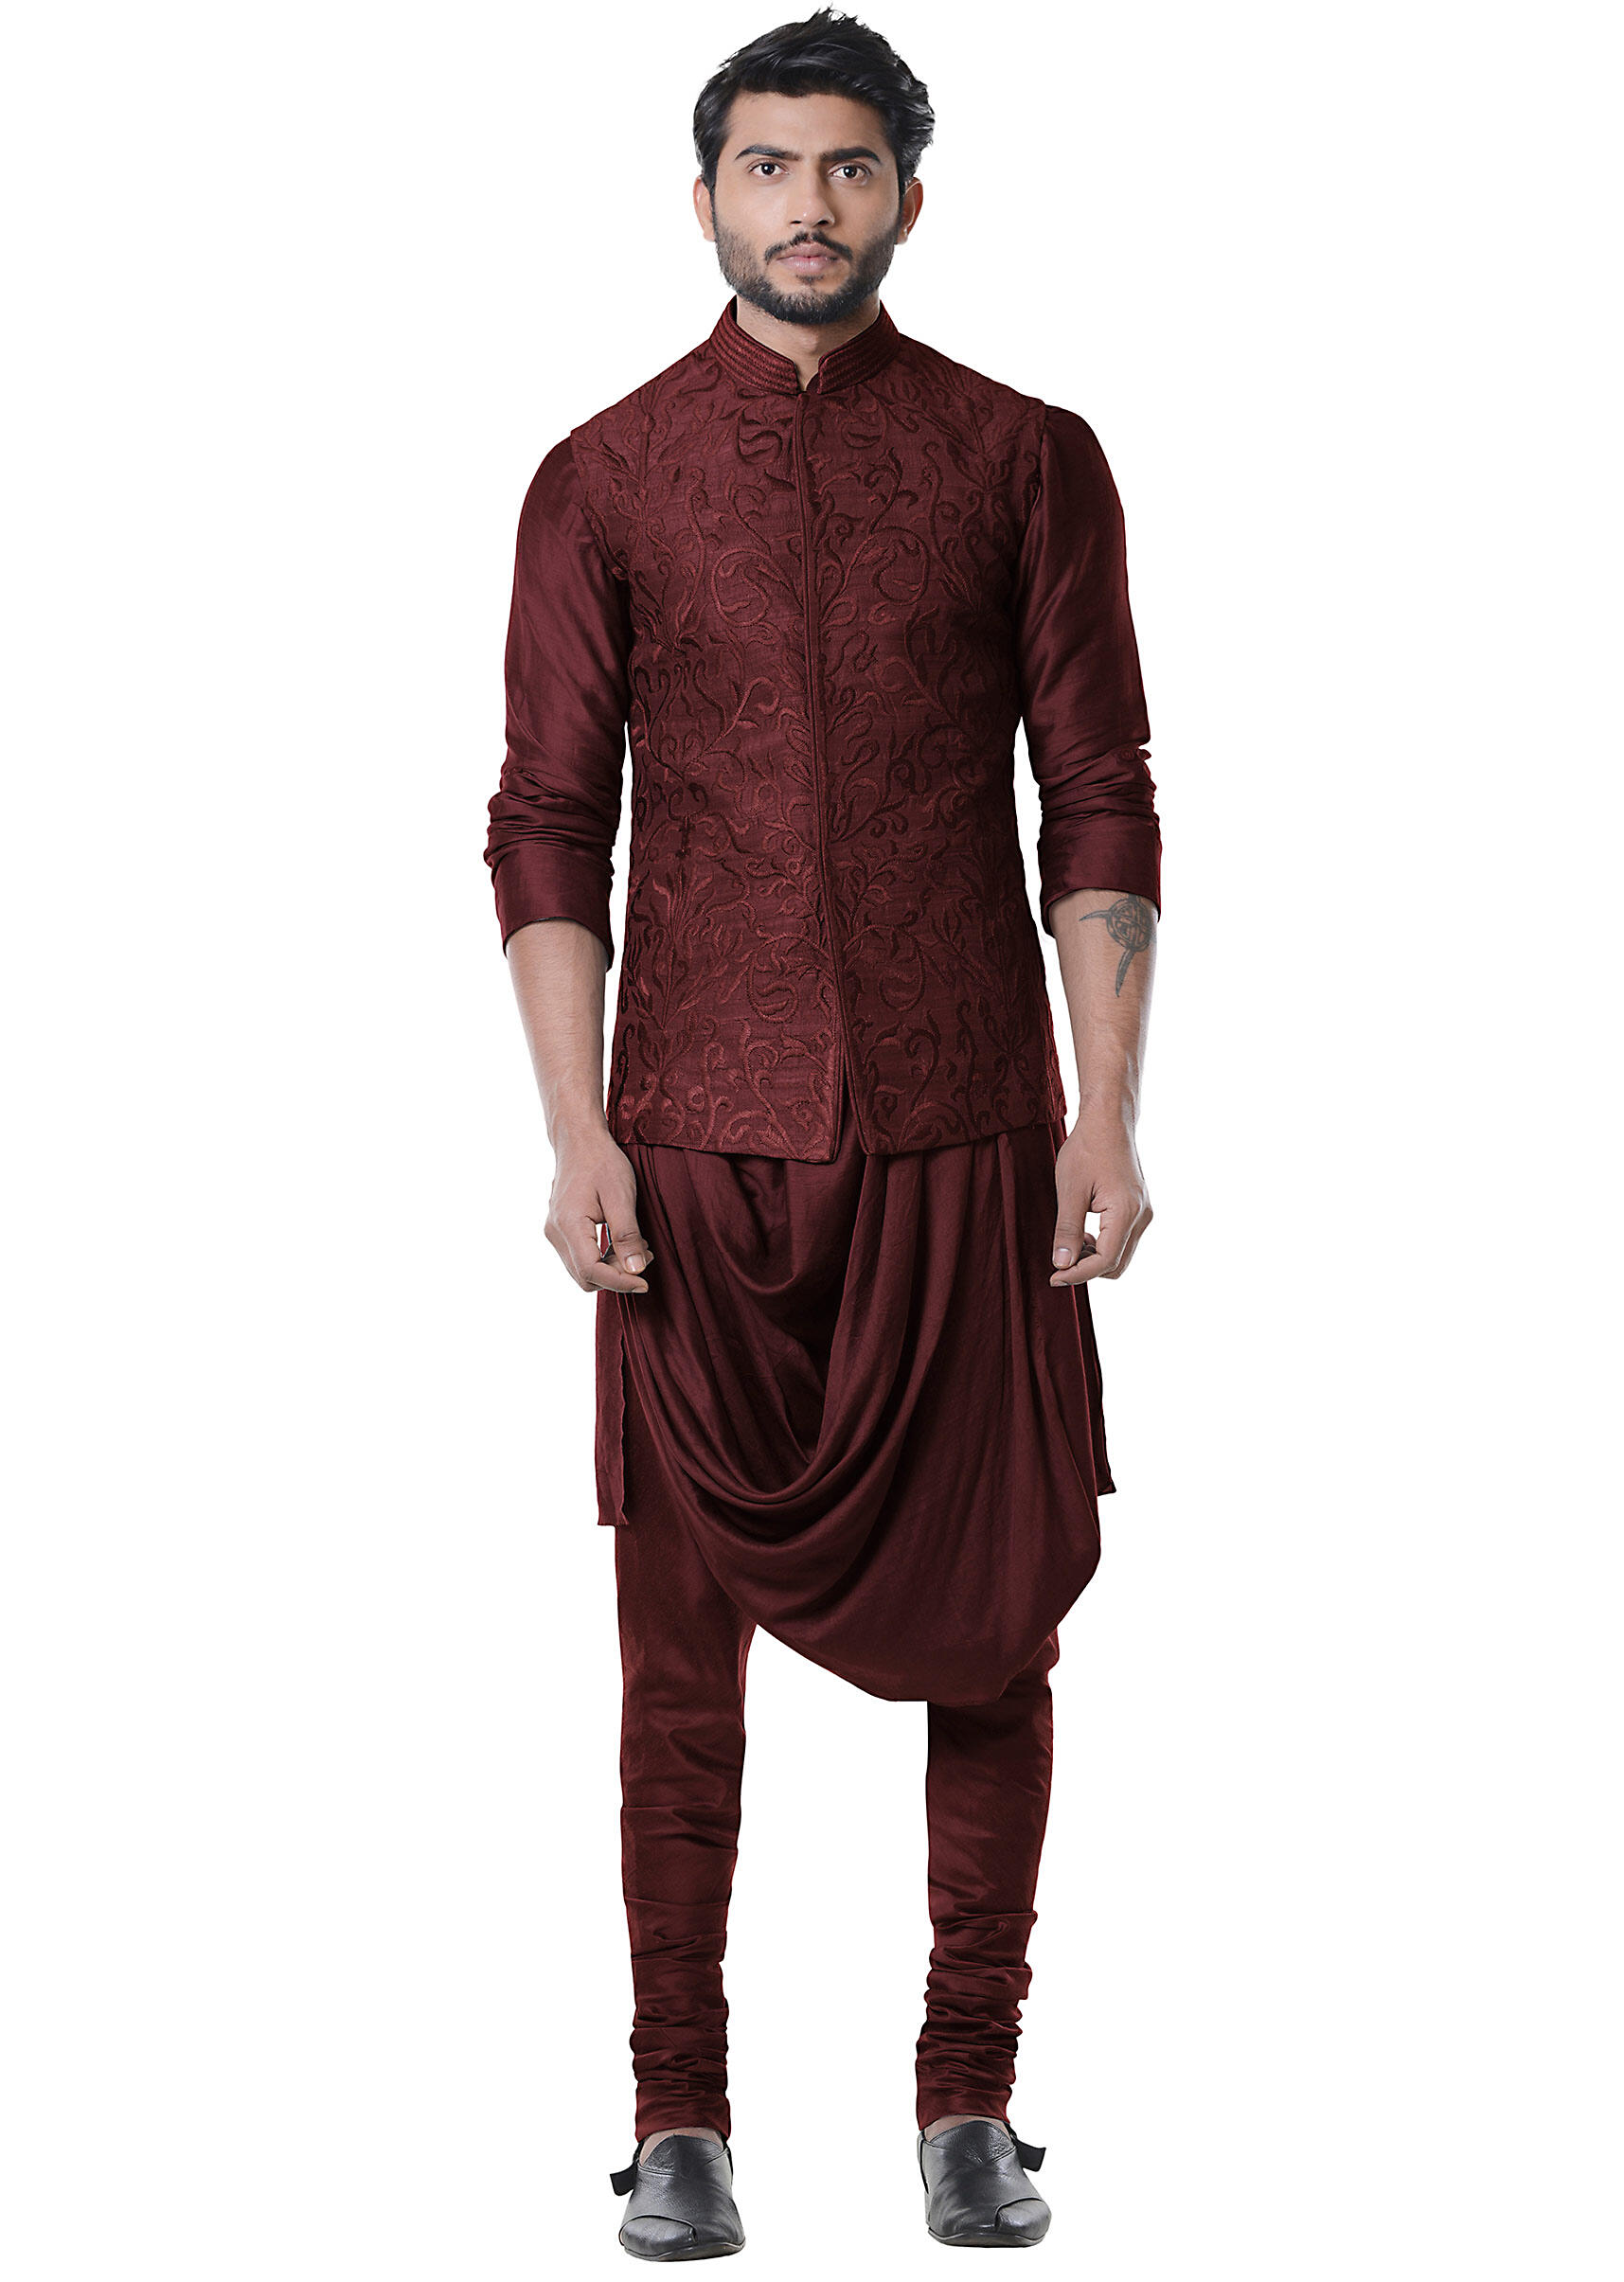 673a51104 Wine Cowl Kurta with Full Embroidered Grey Waist Coat set.